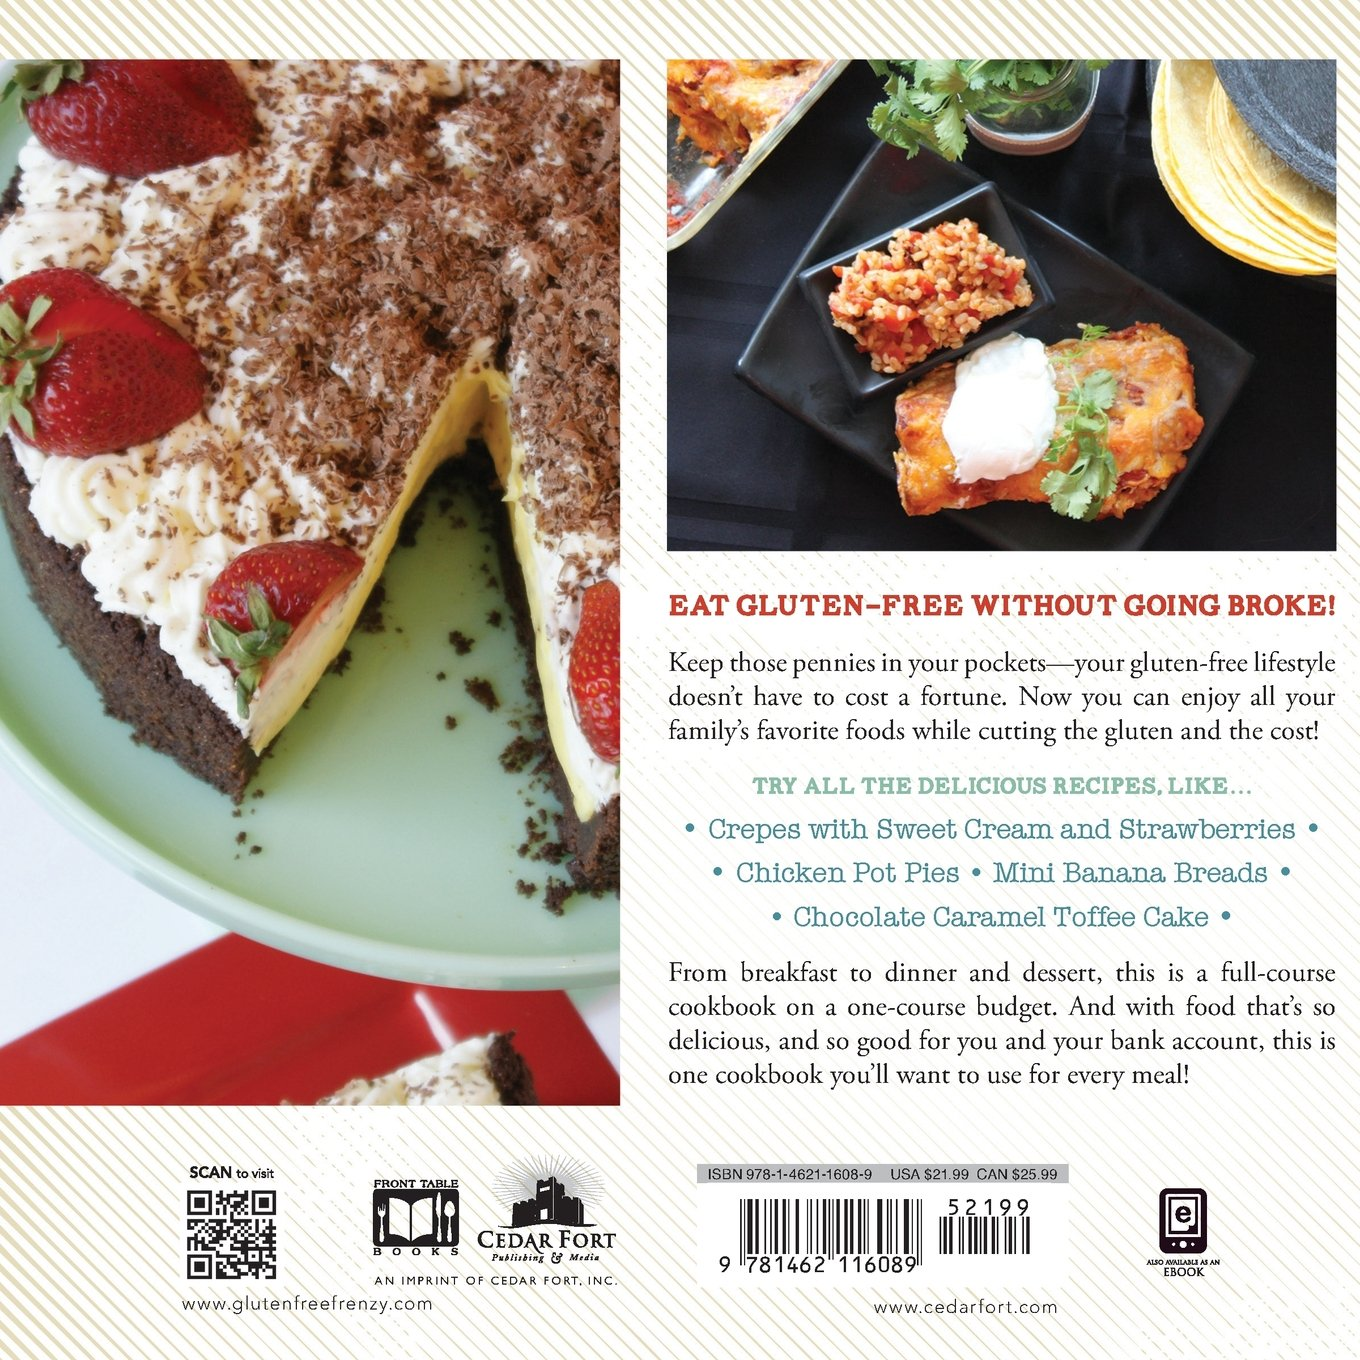 Gluten free on a budget chandice probst and tana besendorfer gluten free on a budget chandice probst and tana besendorfer 9781462116089 amazon books forumfinder Gallery